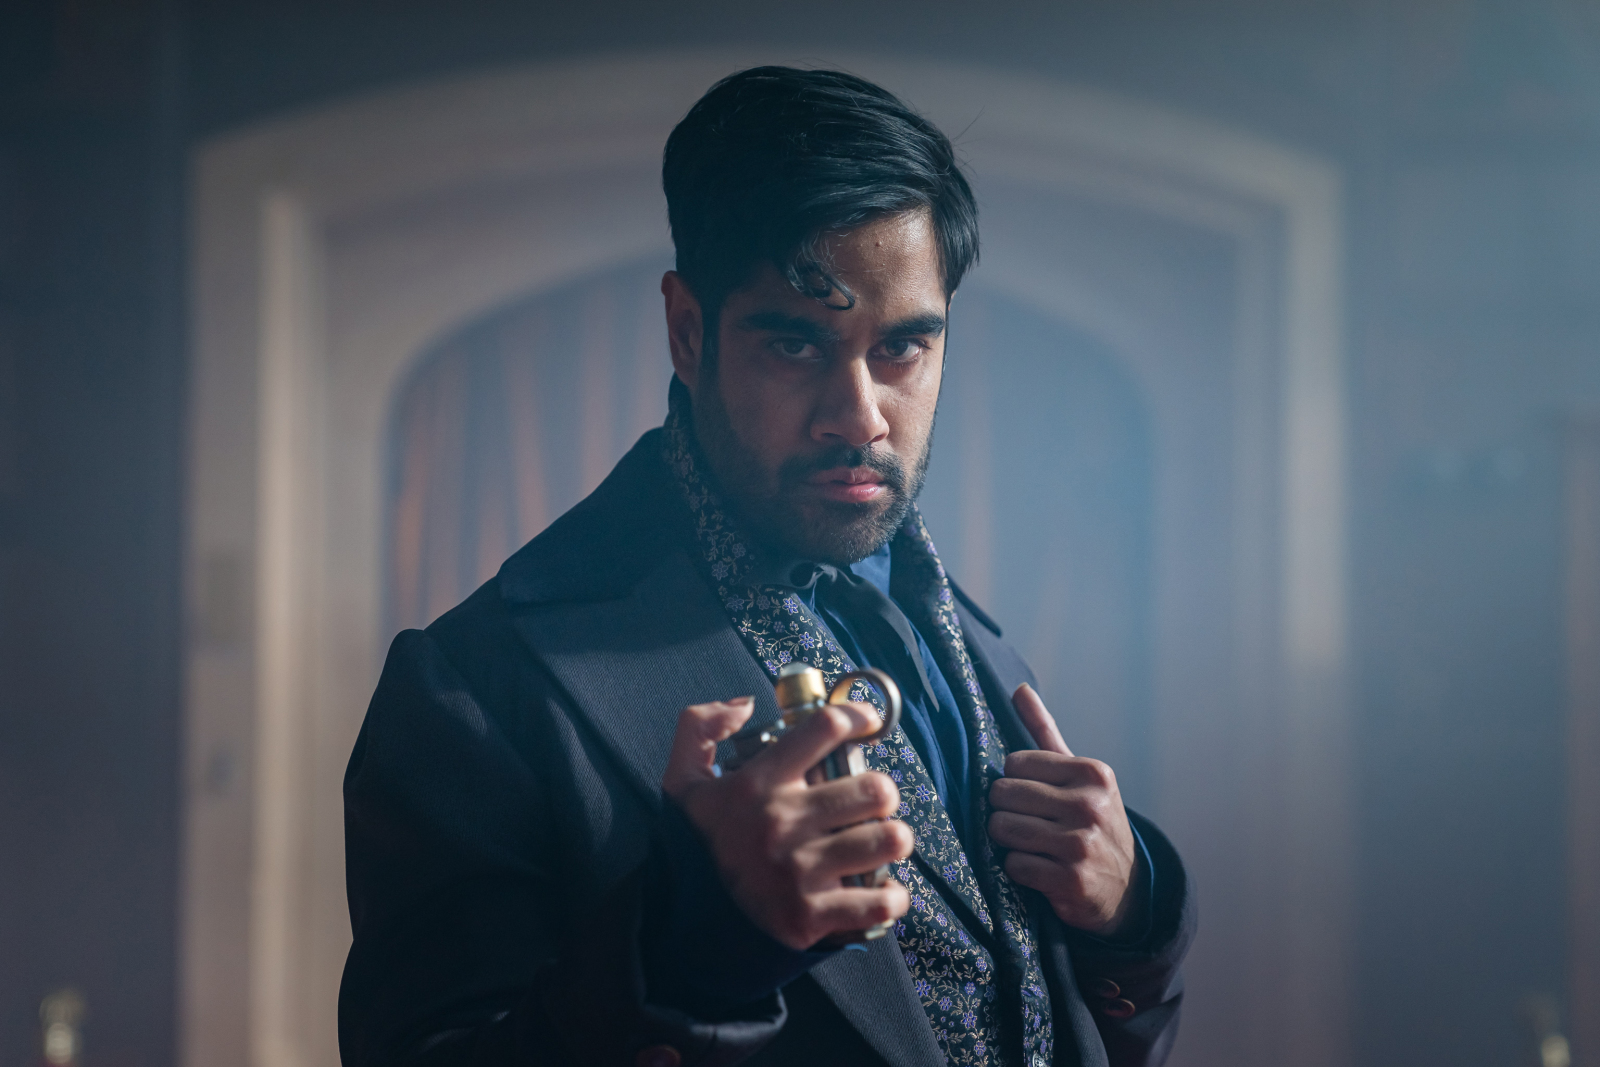 Doctor Who star Sacha Dhawan talks about playing the Master